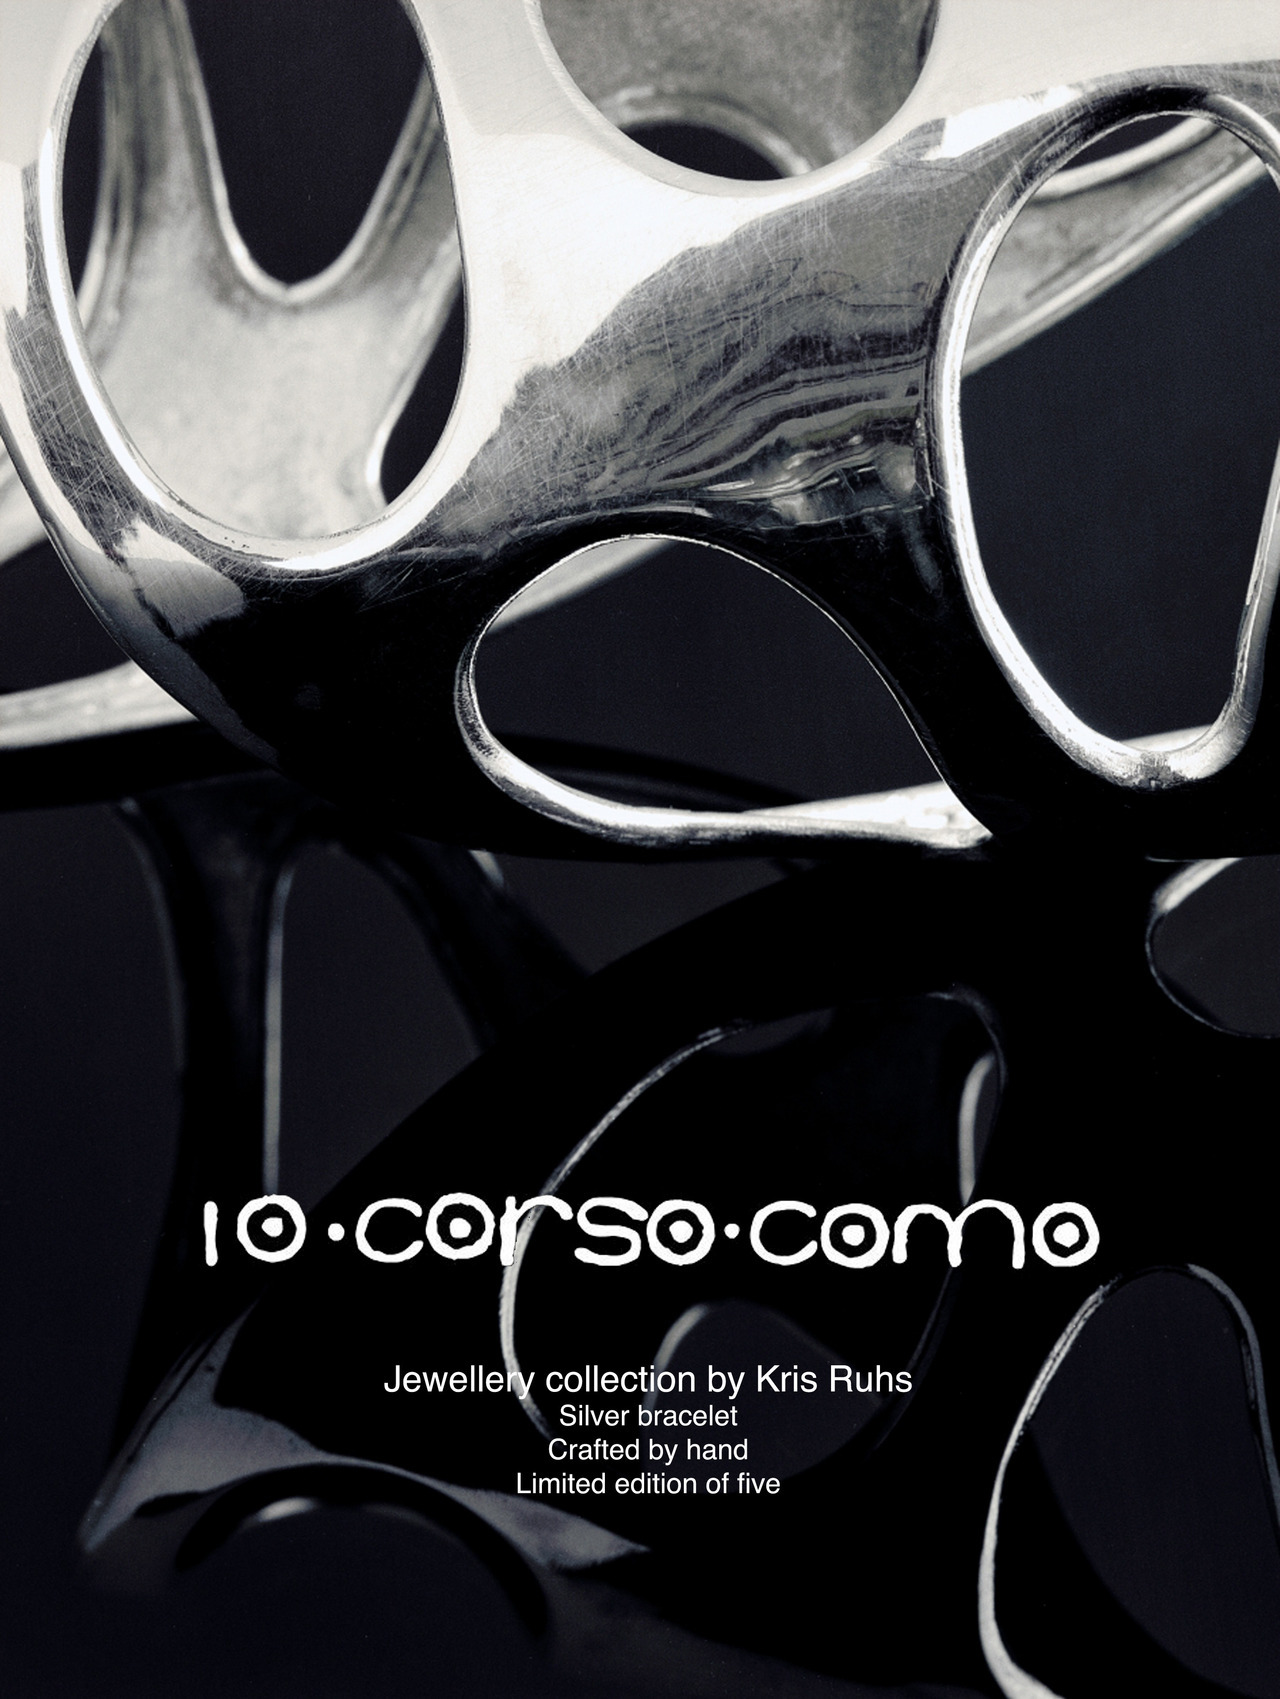 Kris Ruhs jewelry for 10 Corso Como, IED Roma classwork. (photo credit 10 Corso Como)